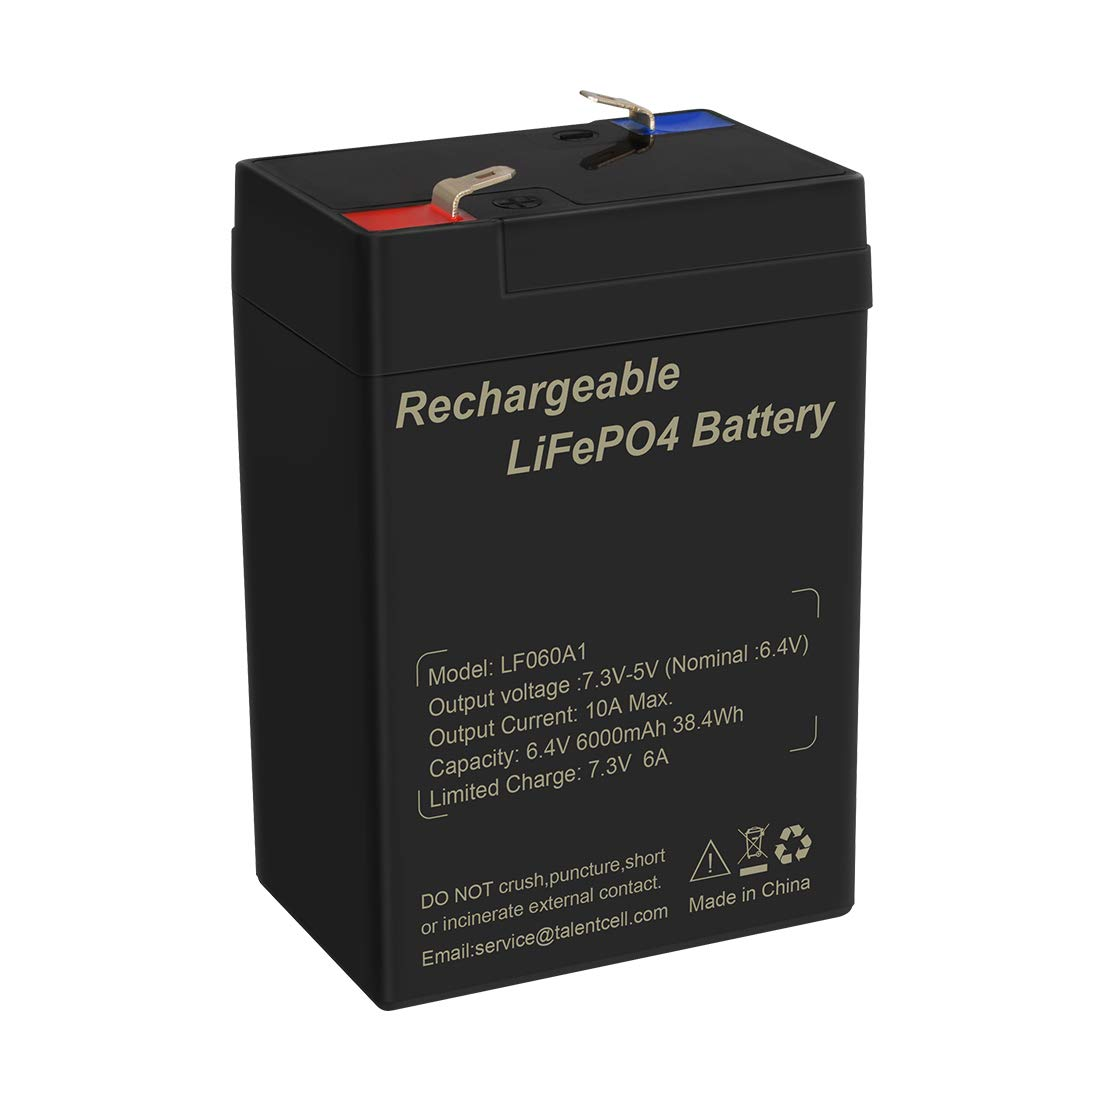 TalentCell 6V 6Ah Rechargeable Lithium Iron Phosphate (LiFePO4) Battery Pack by Talentcell